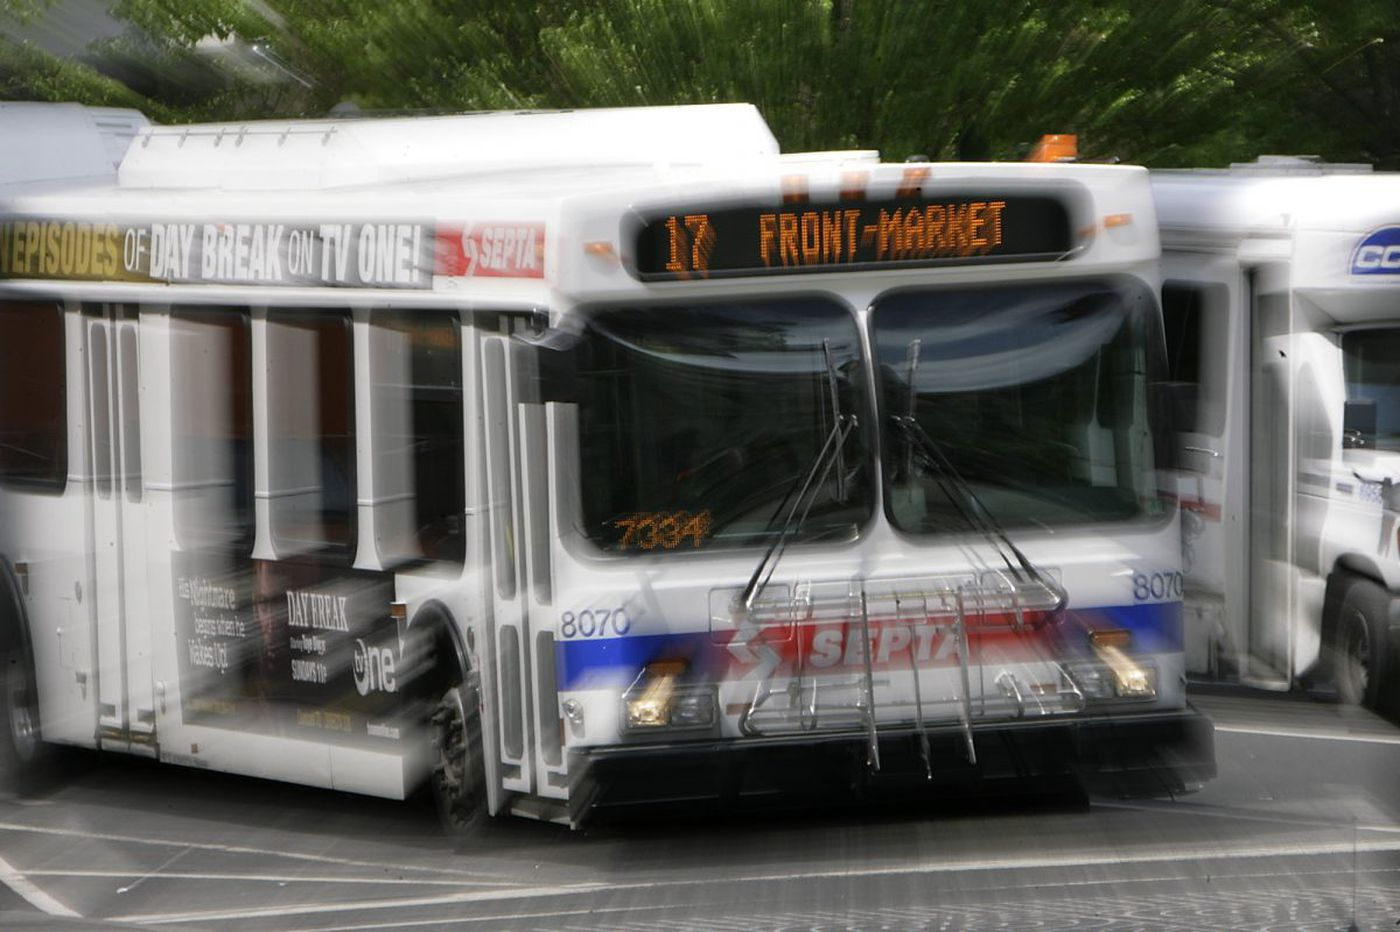 5 ways to fix Philly's broken bus system | Opinion